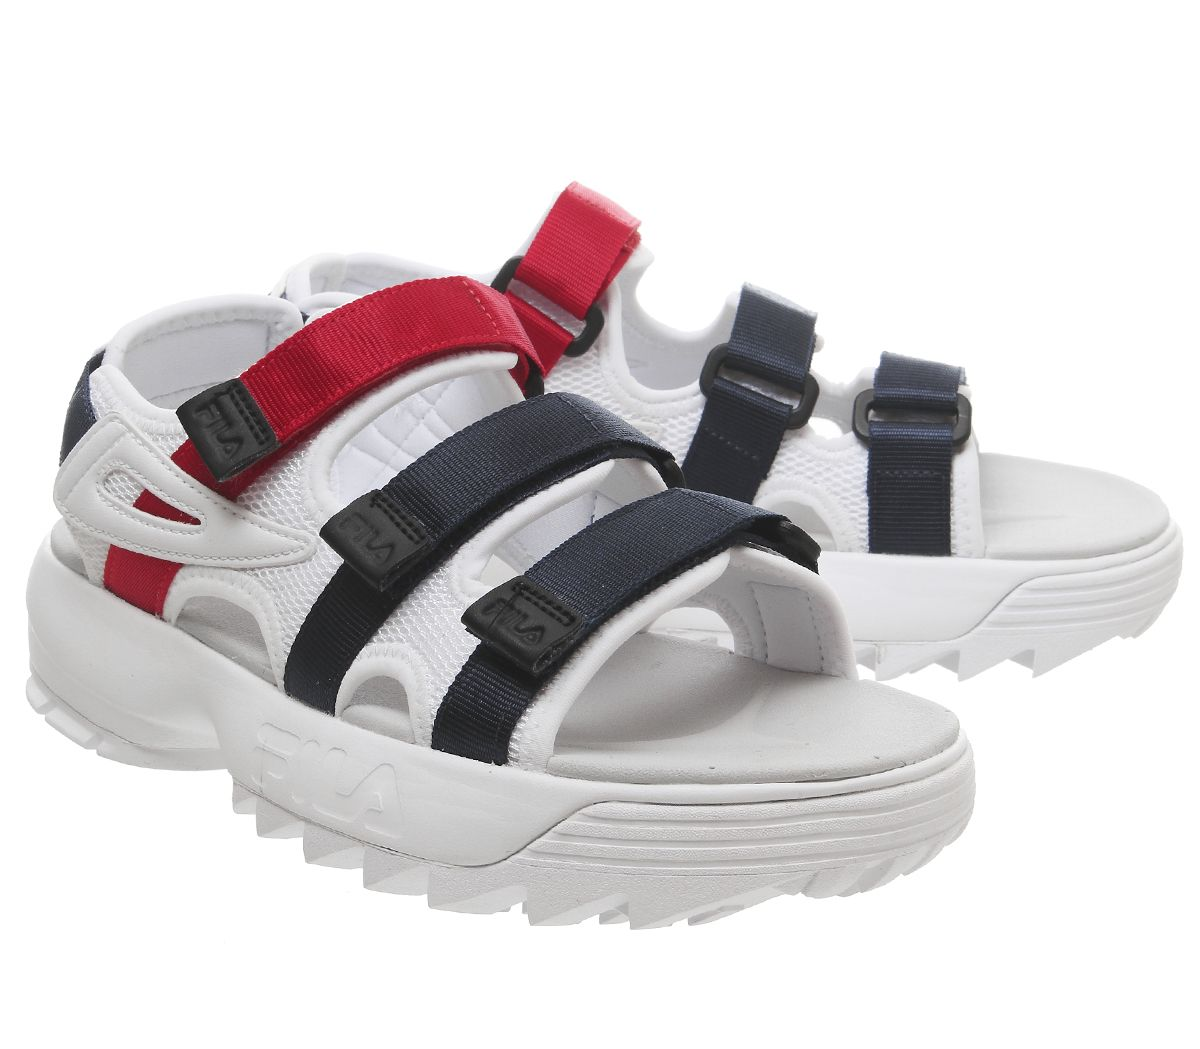 4516556df48 Sentinel Womens Fila Disruptor Sandals White Fila Navy Fila Red Sandals